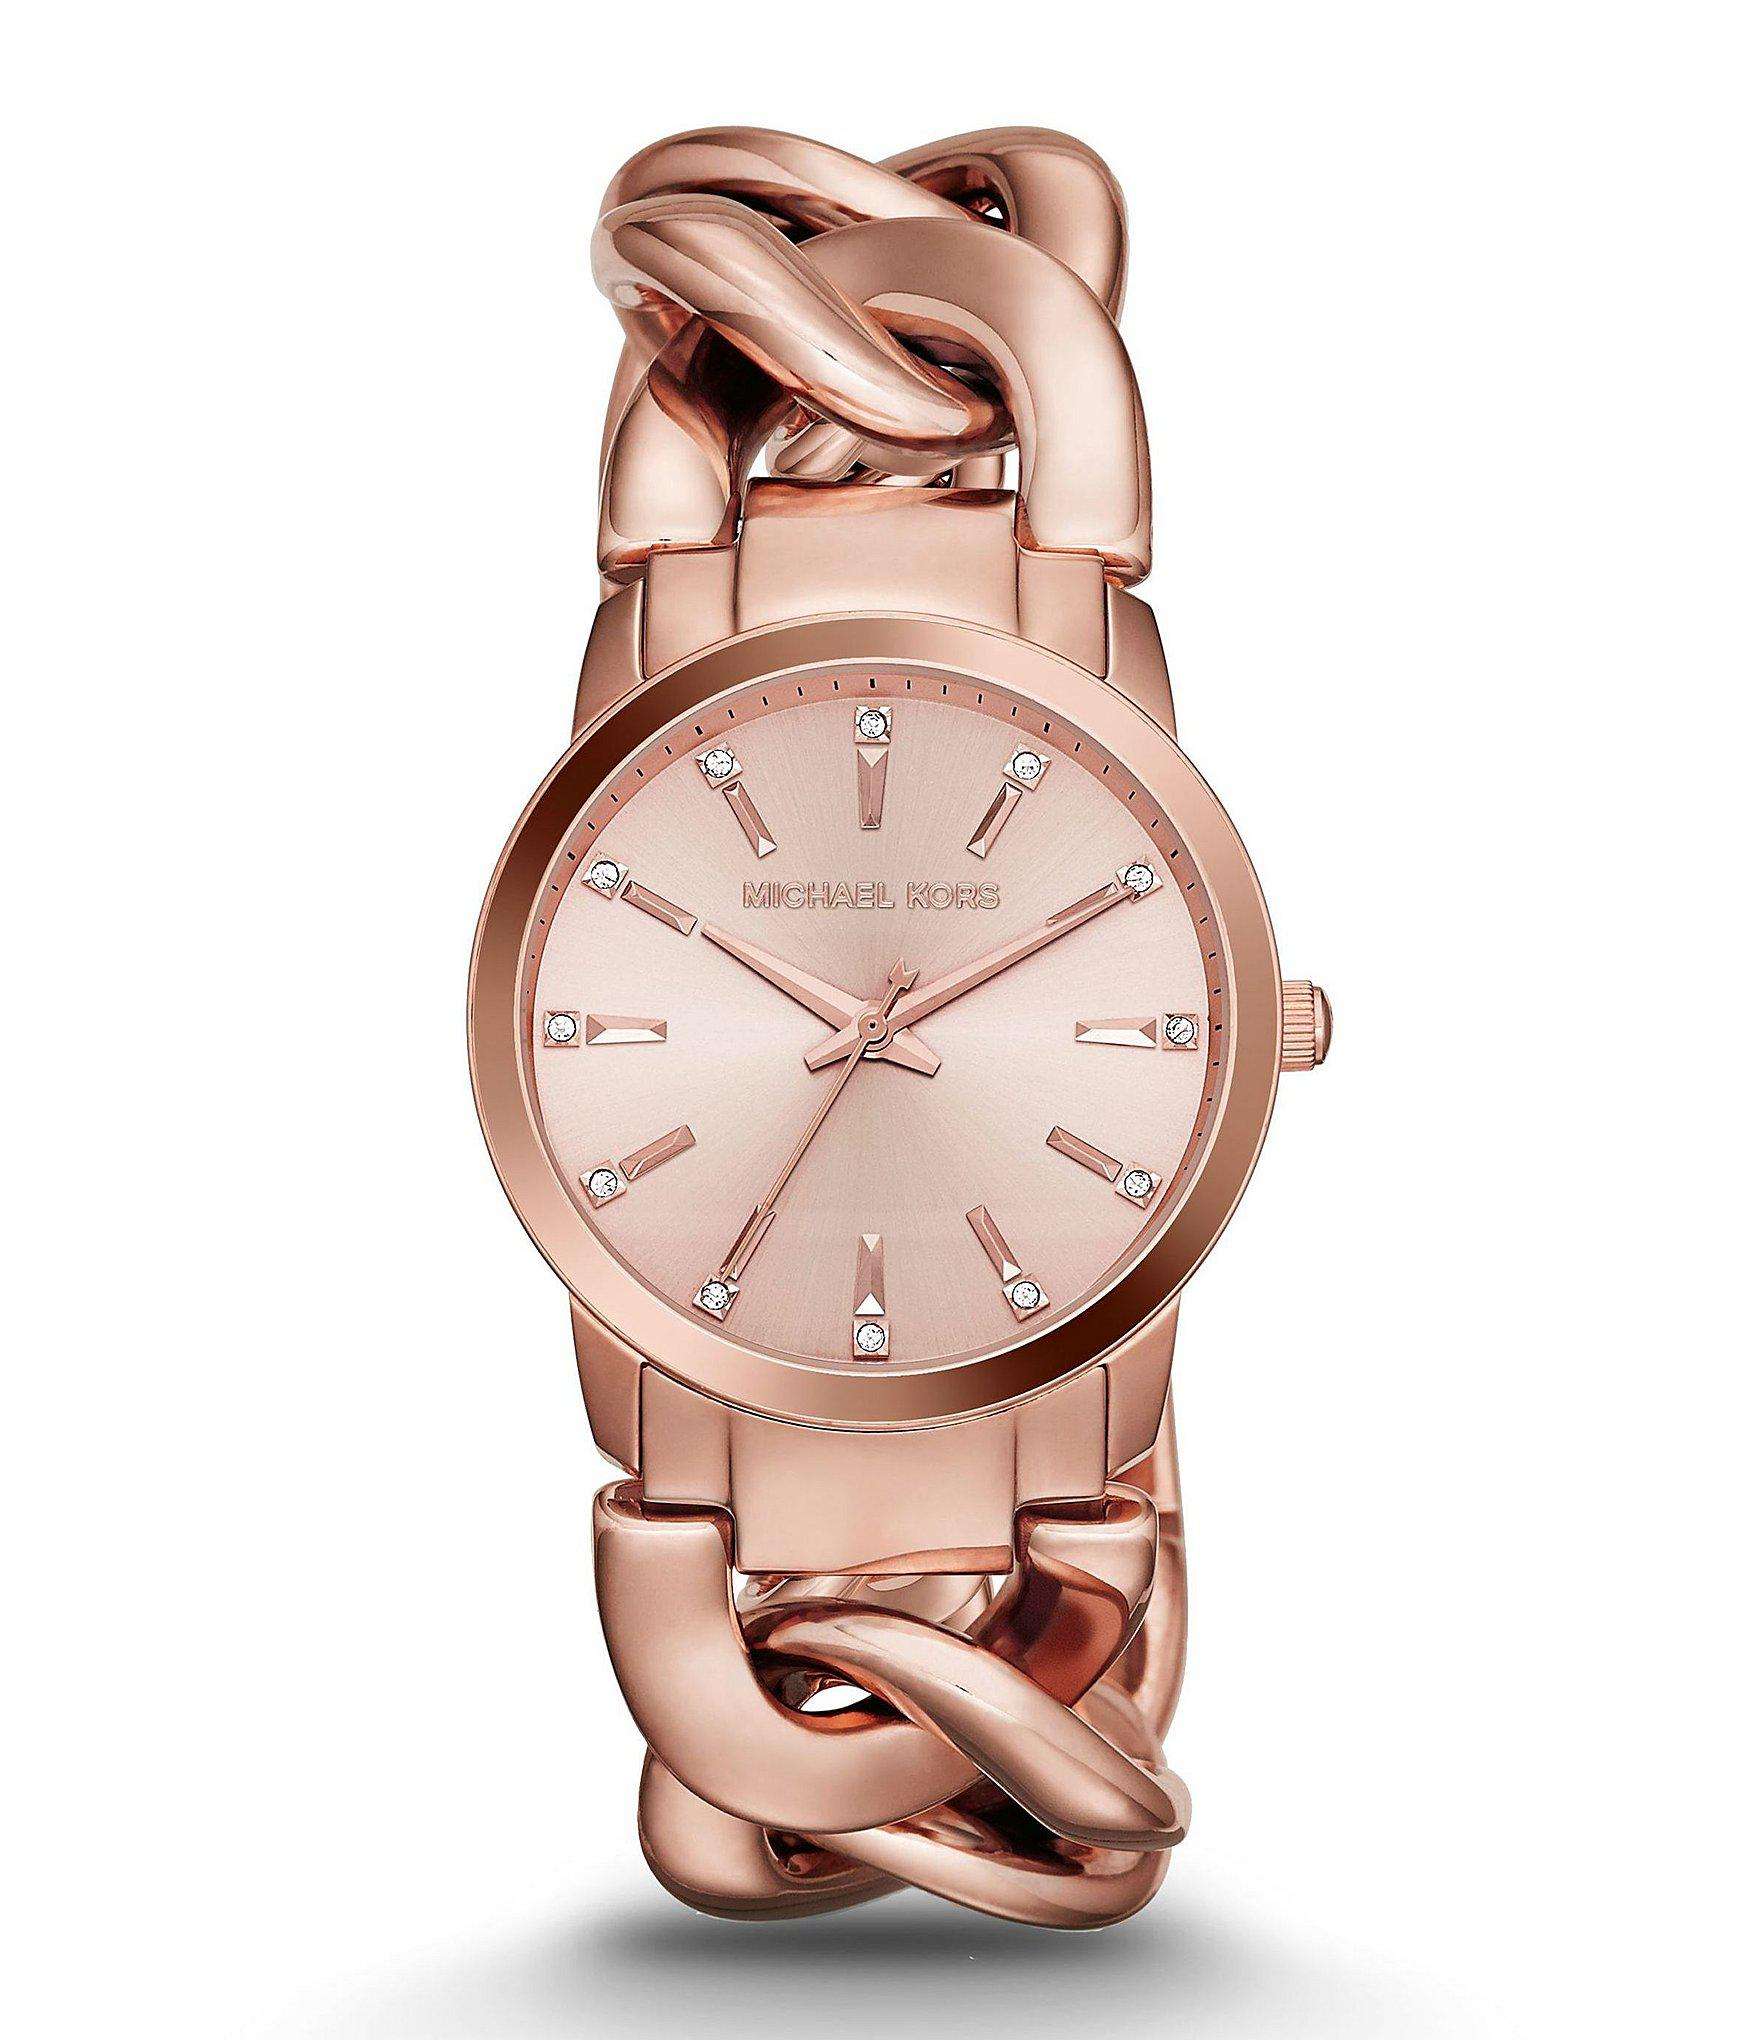 de1639e347765 Michael Kors Rose Gold Tone Elena Curb Chain Watch in Metallic - Lyst